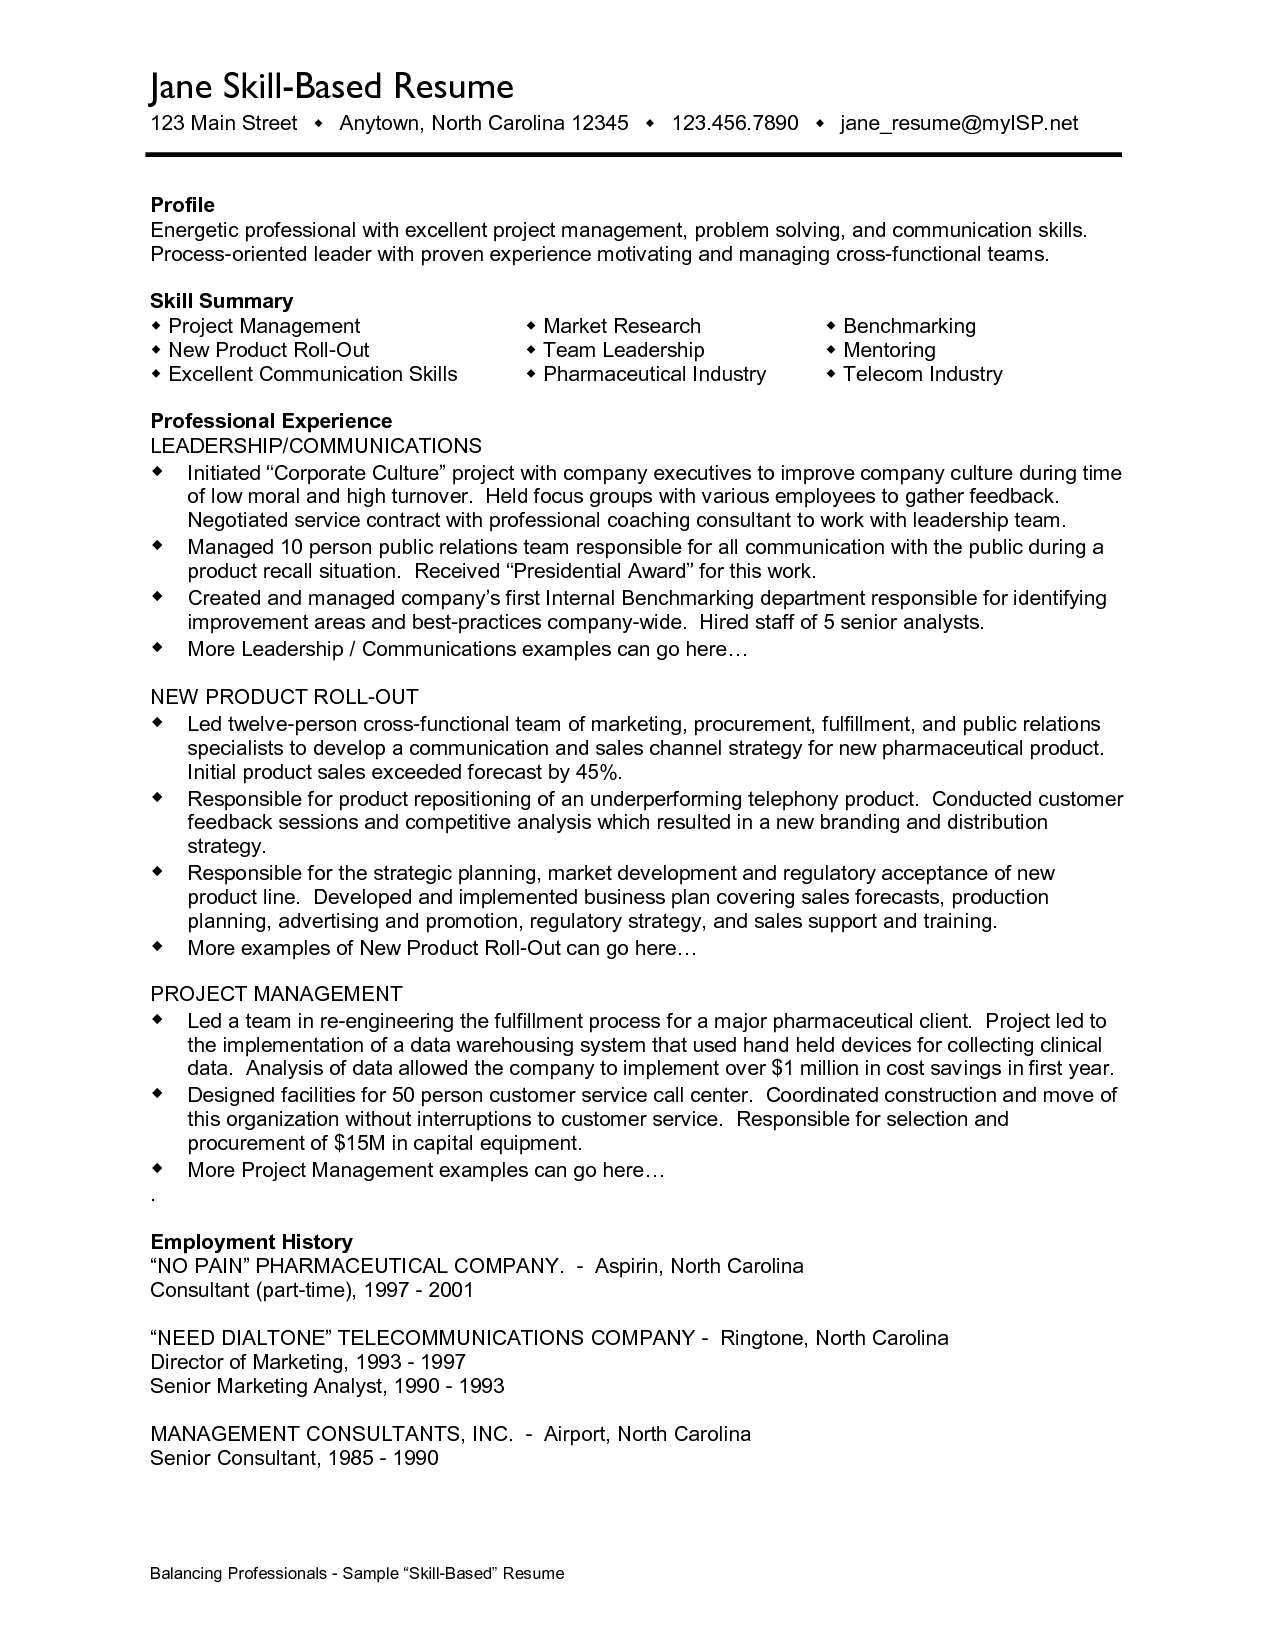 Skills On A Resume Examples Job Resume Communication Skills  Httpwwwresumecareerjob